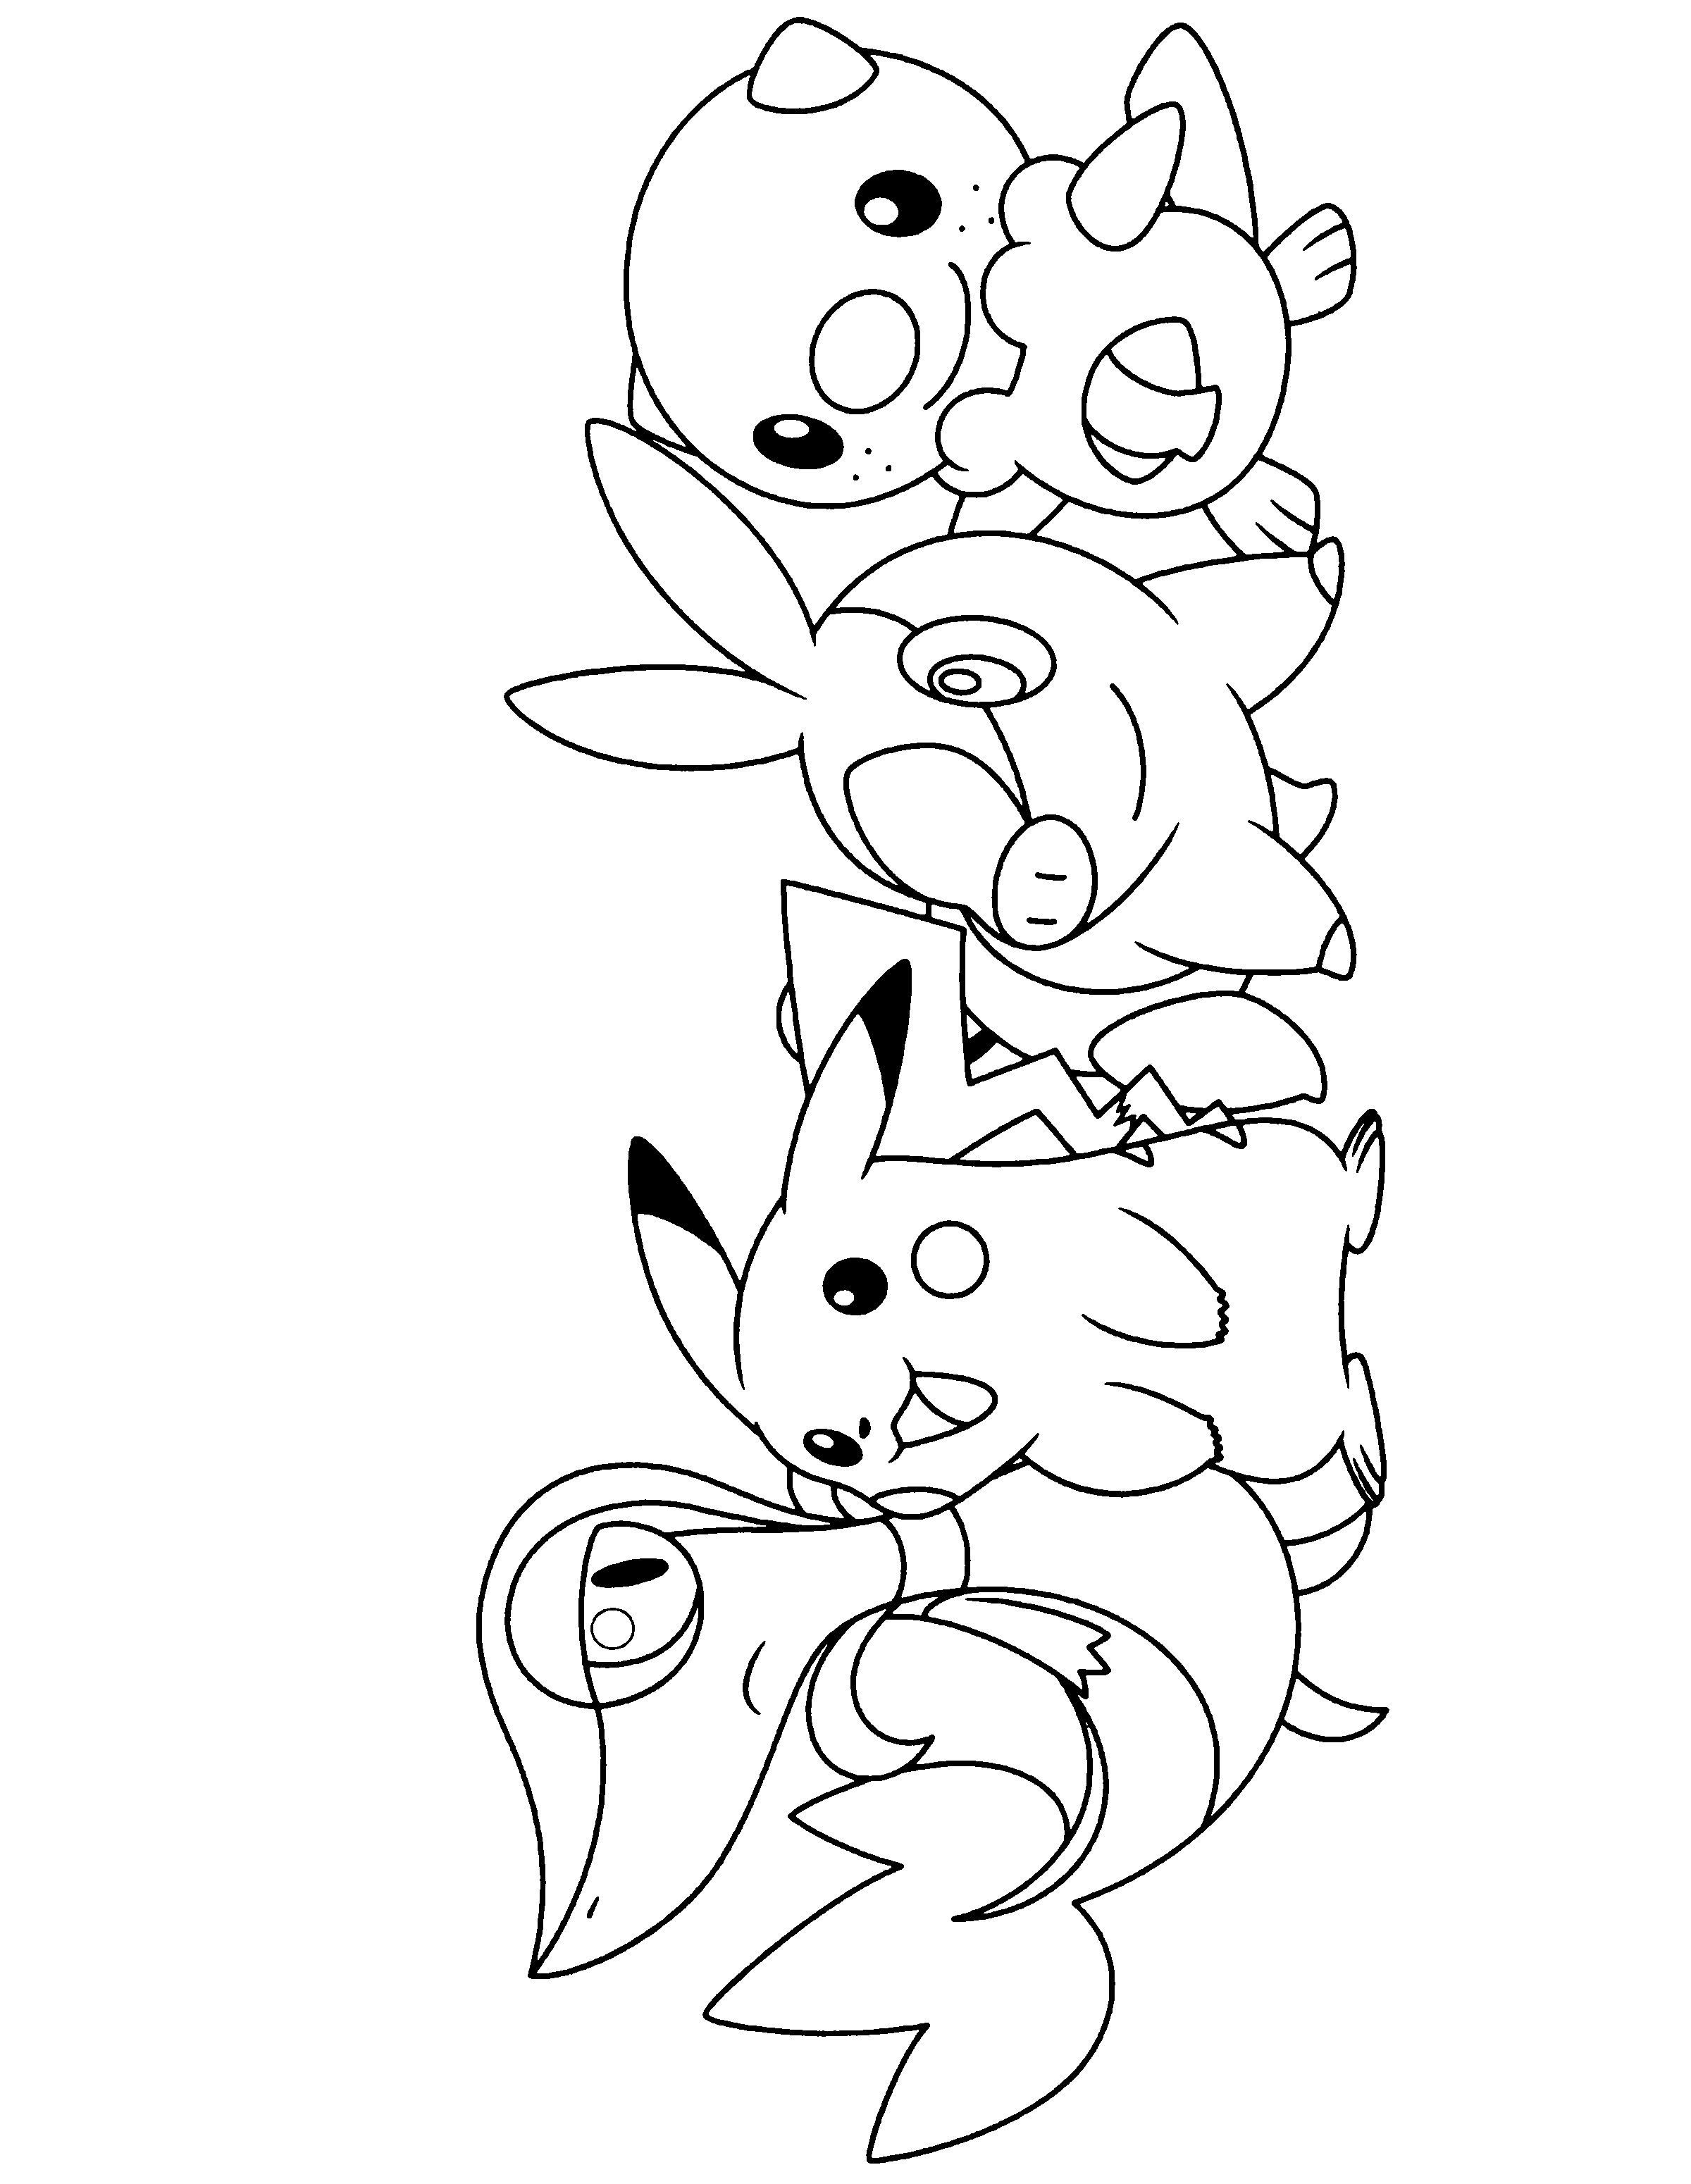 Coloring Pokemon Black And White Through The Thousand Photographs On Line Regarding Coloring Pokemon Coloring Pages Pokemon Coloring Pokemon Coloring Sheets